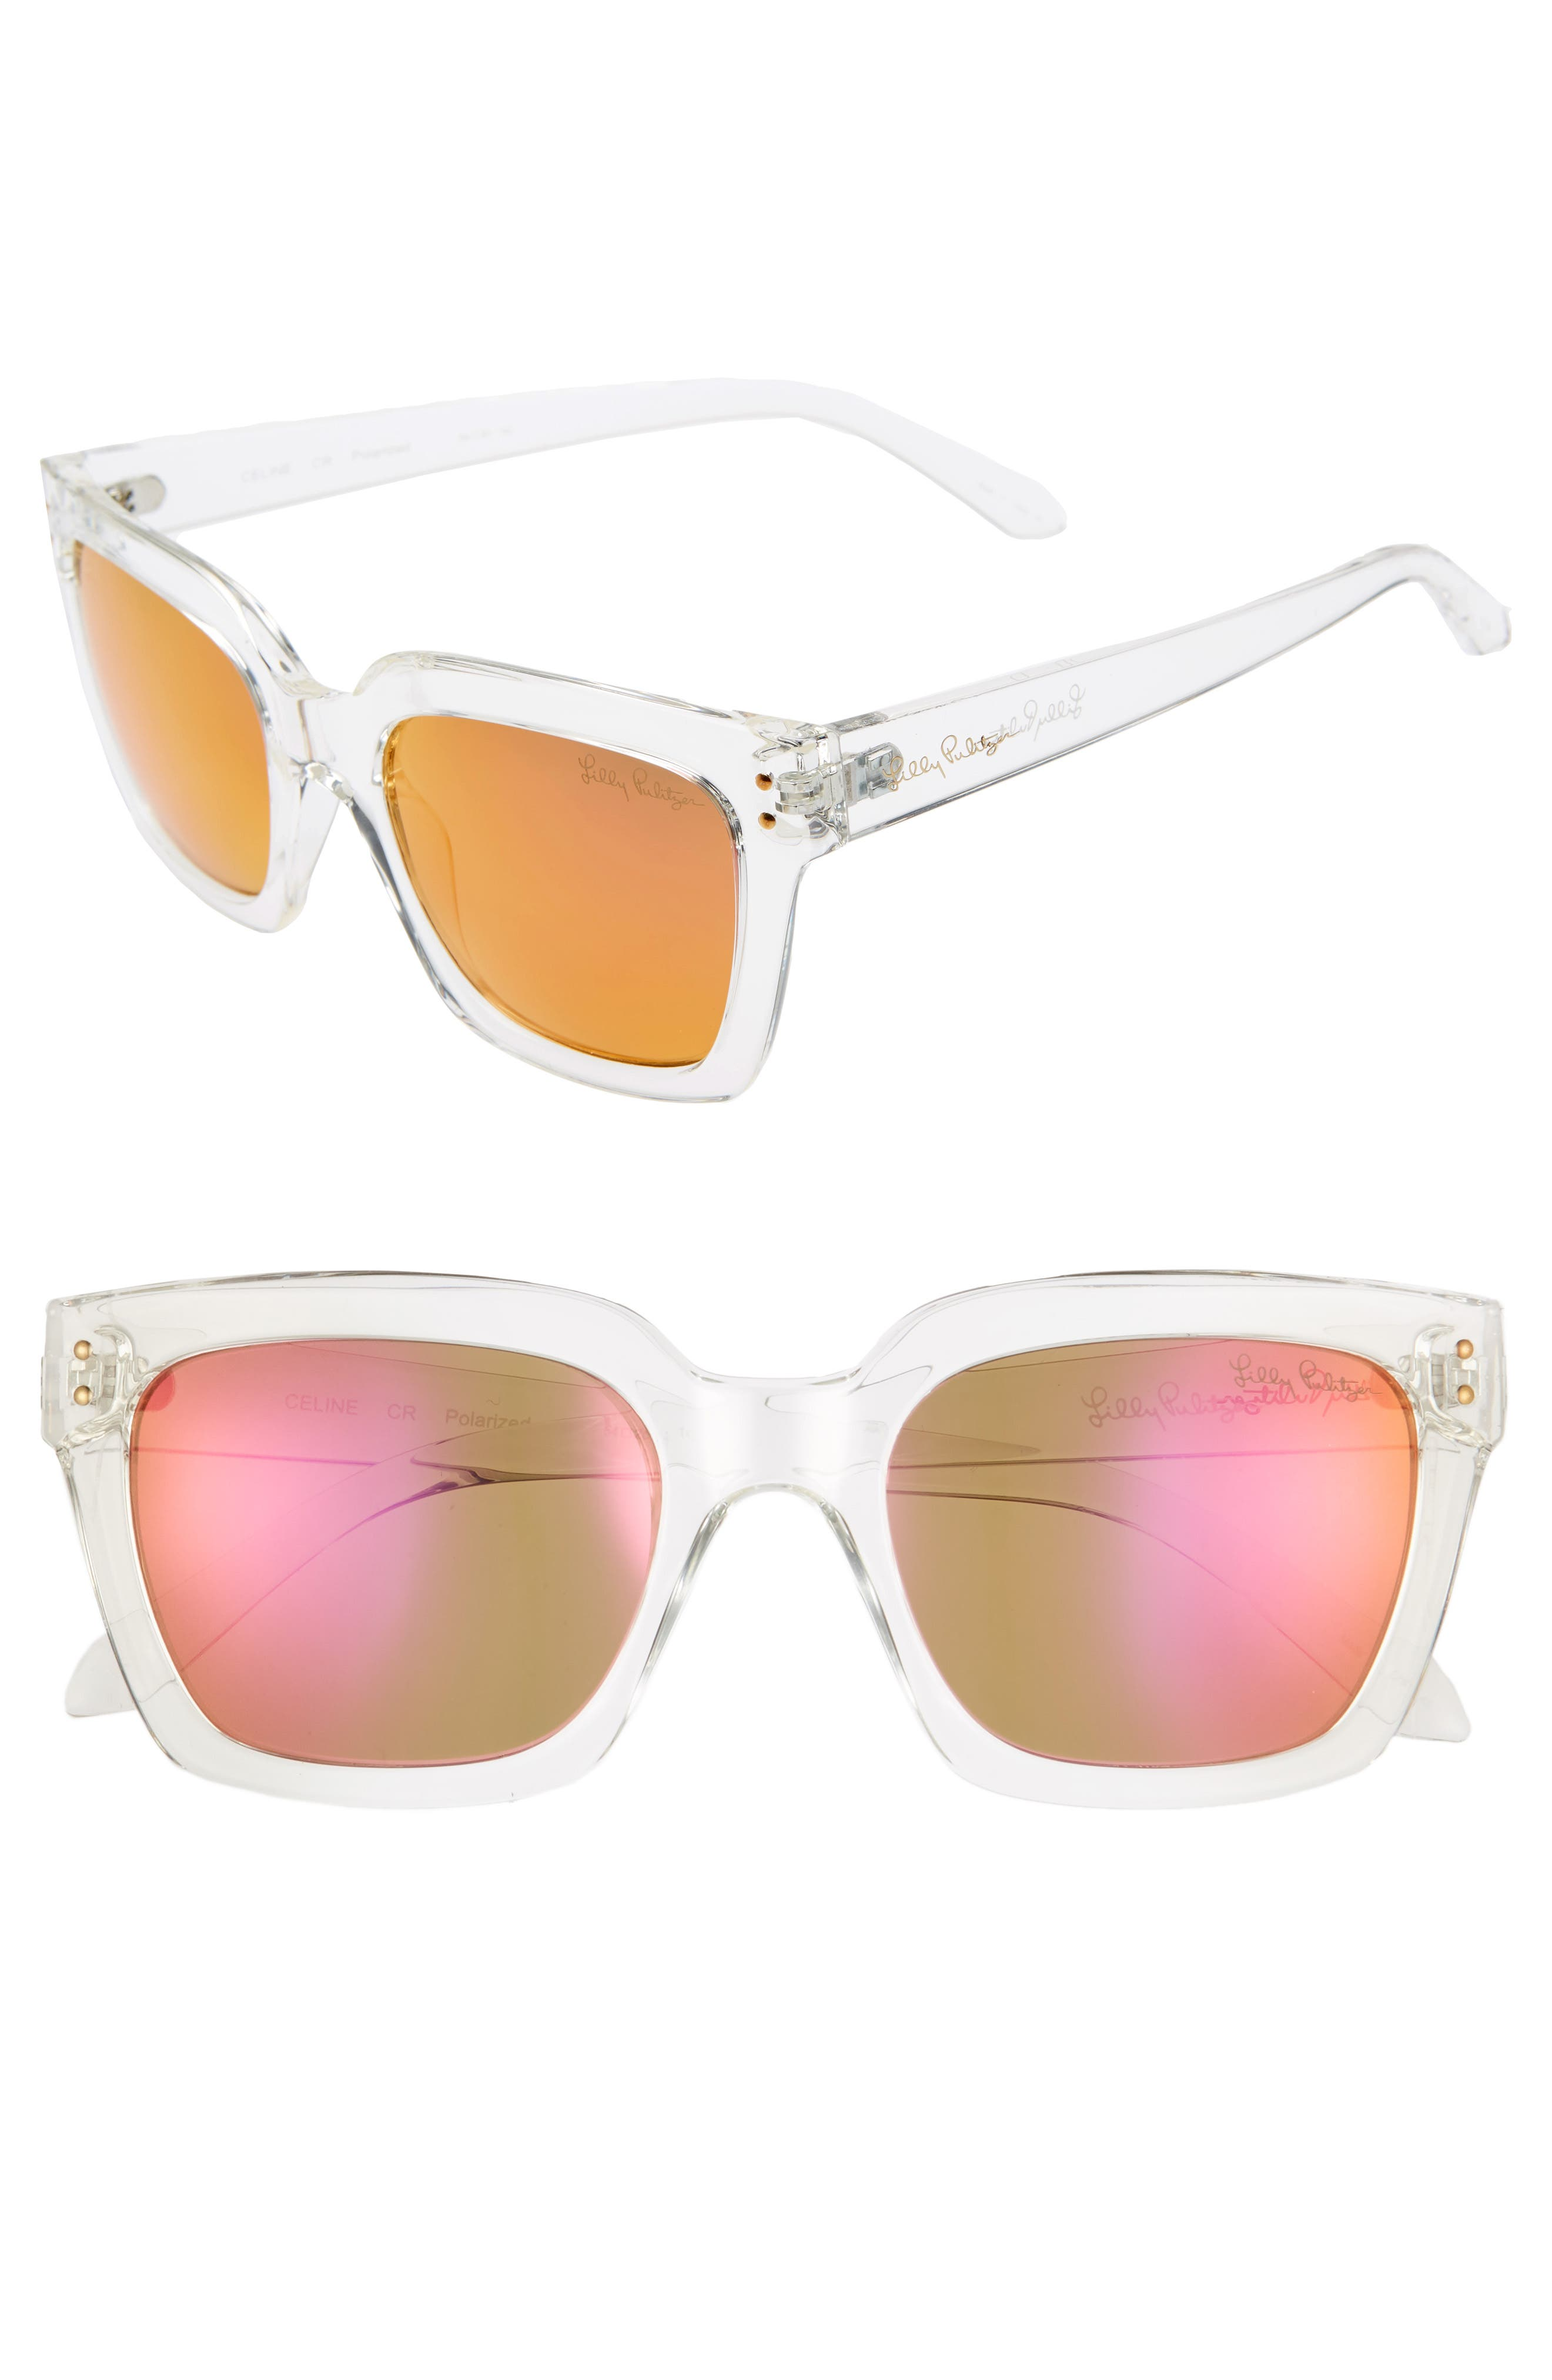 LILLY PULITZER<SUP>®</SUP>,                             Lilly Pulitzer Celine 54mm Polarized Square Sunglasses,                             Main thumbnail 1, color,                             CRYSTAL CLEAR/ PINK MIRROR